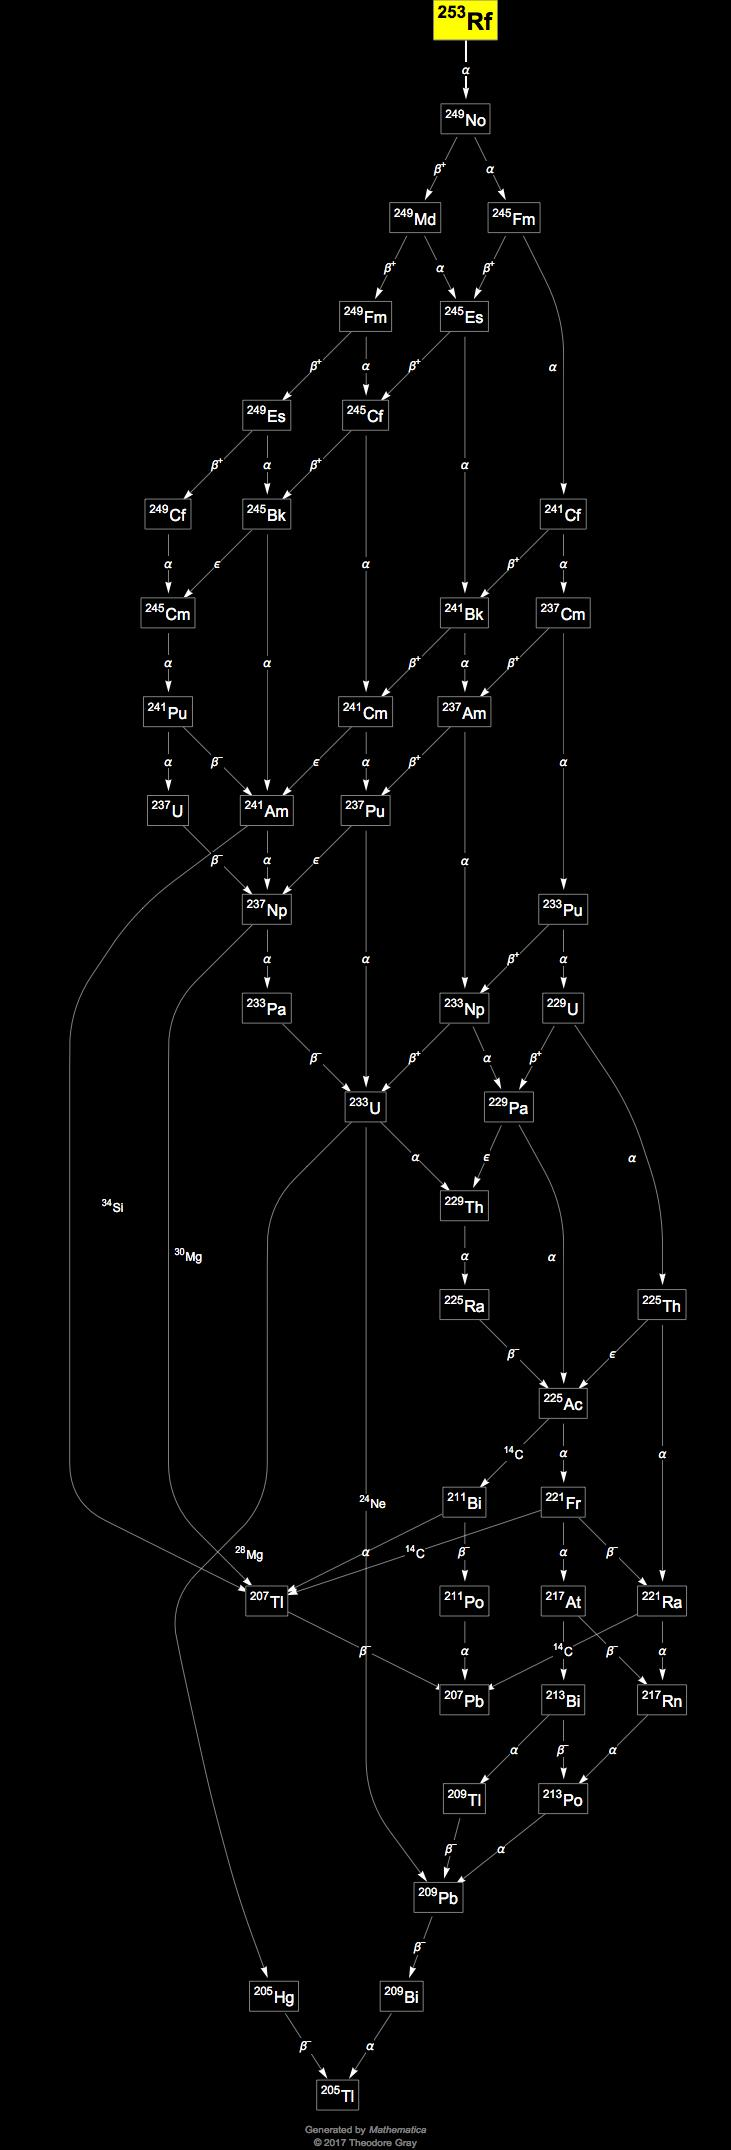 Isotope data for rutherfordium253 in the periodic table decay chain image generated by mathematicas graphplot and isotopedata functions from wolfram research inc gamestrikefo Image collections